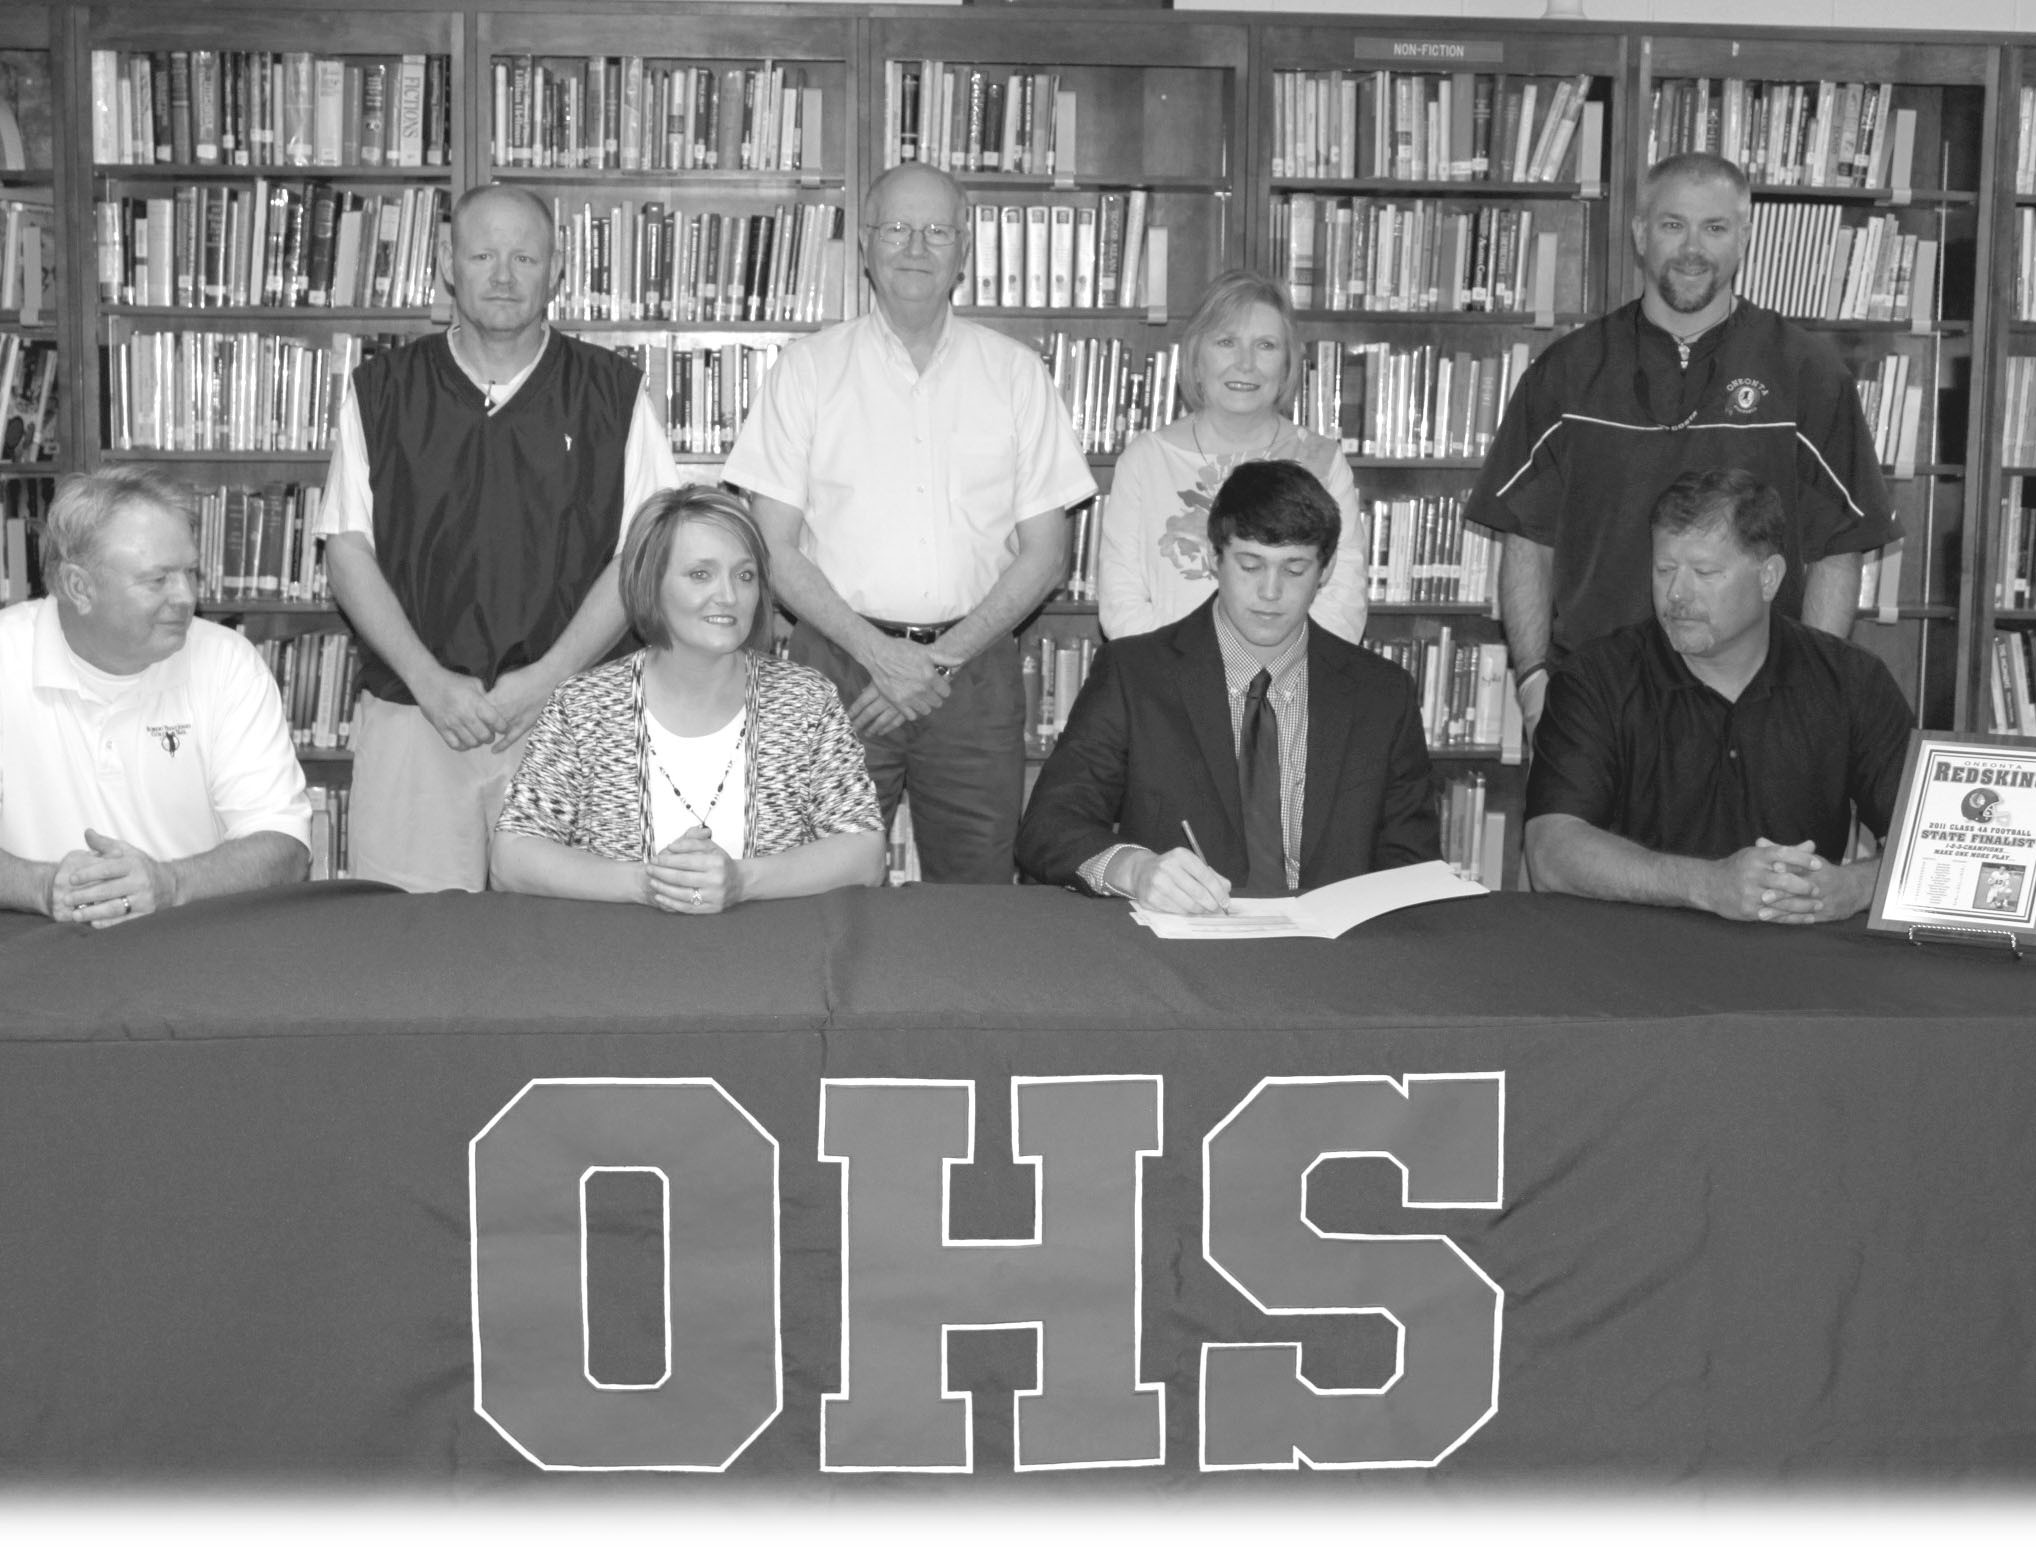 Oneonta quarterback Schyler Walker has signed a scholarship with Southwest Mississippi Community College. Pictured above are (bottom row, left to right) Oneonta head coach Don Jacobs, parents Tammy and John Walker; (top row) Oneonta assistant coach Phil Phillips, grandparents Johnny Walker and Betty Moss, and Oneonta assistant coach David Elrod. Walker, a two-year starter for the Redskins, finished his career as the Redskins' all-time leading passer. As a senior, Walker completed 201 of 360 passes for 2919 yards with 38 touchdowns and 11 interceptions. He also rushed for 419 yards and seven touchdowns on 71 carries and caught two passes for 95 yards and a score. Oneonta finished the year 12-3 and was runner-up in Class 4A after a 42-28 loss to Jackson in the title game.